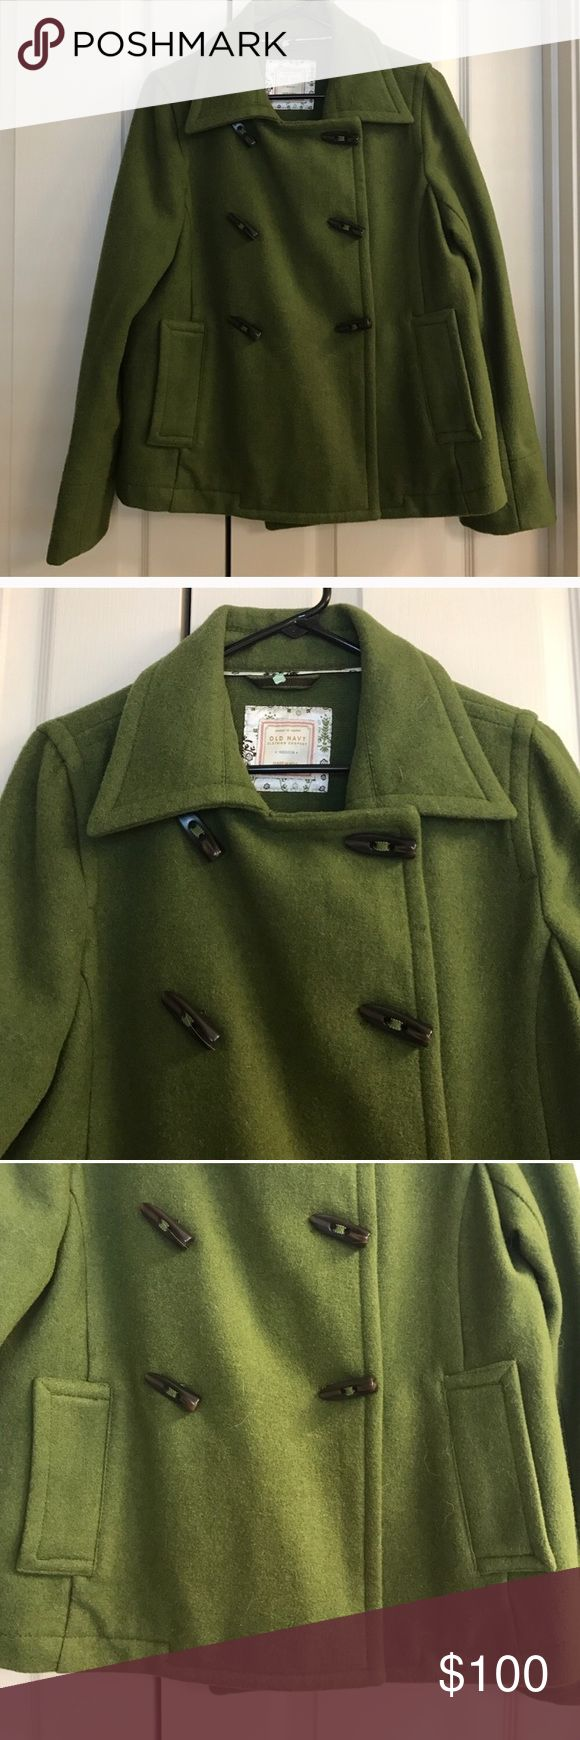 Size Medium green Old Navy peacoat Size Medium green Old Navy peacoat Old Navy Jackets & Coats Pea Coats